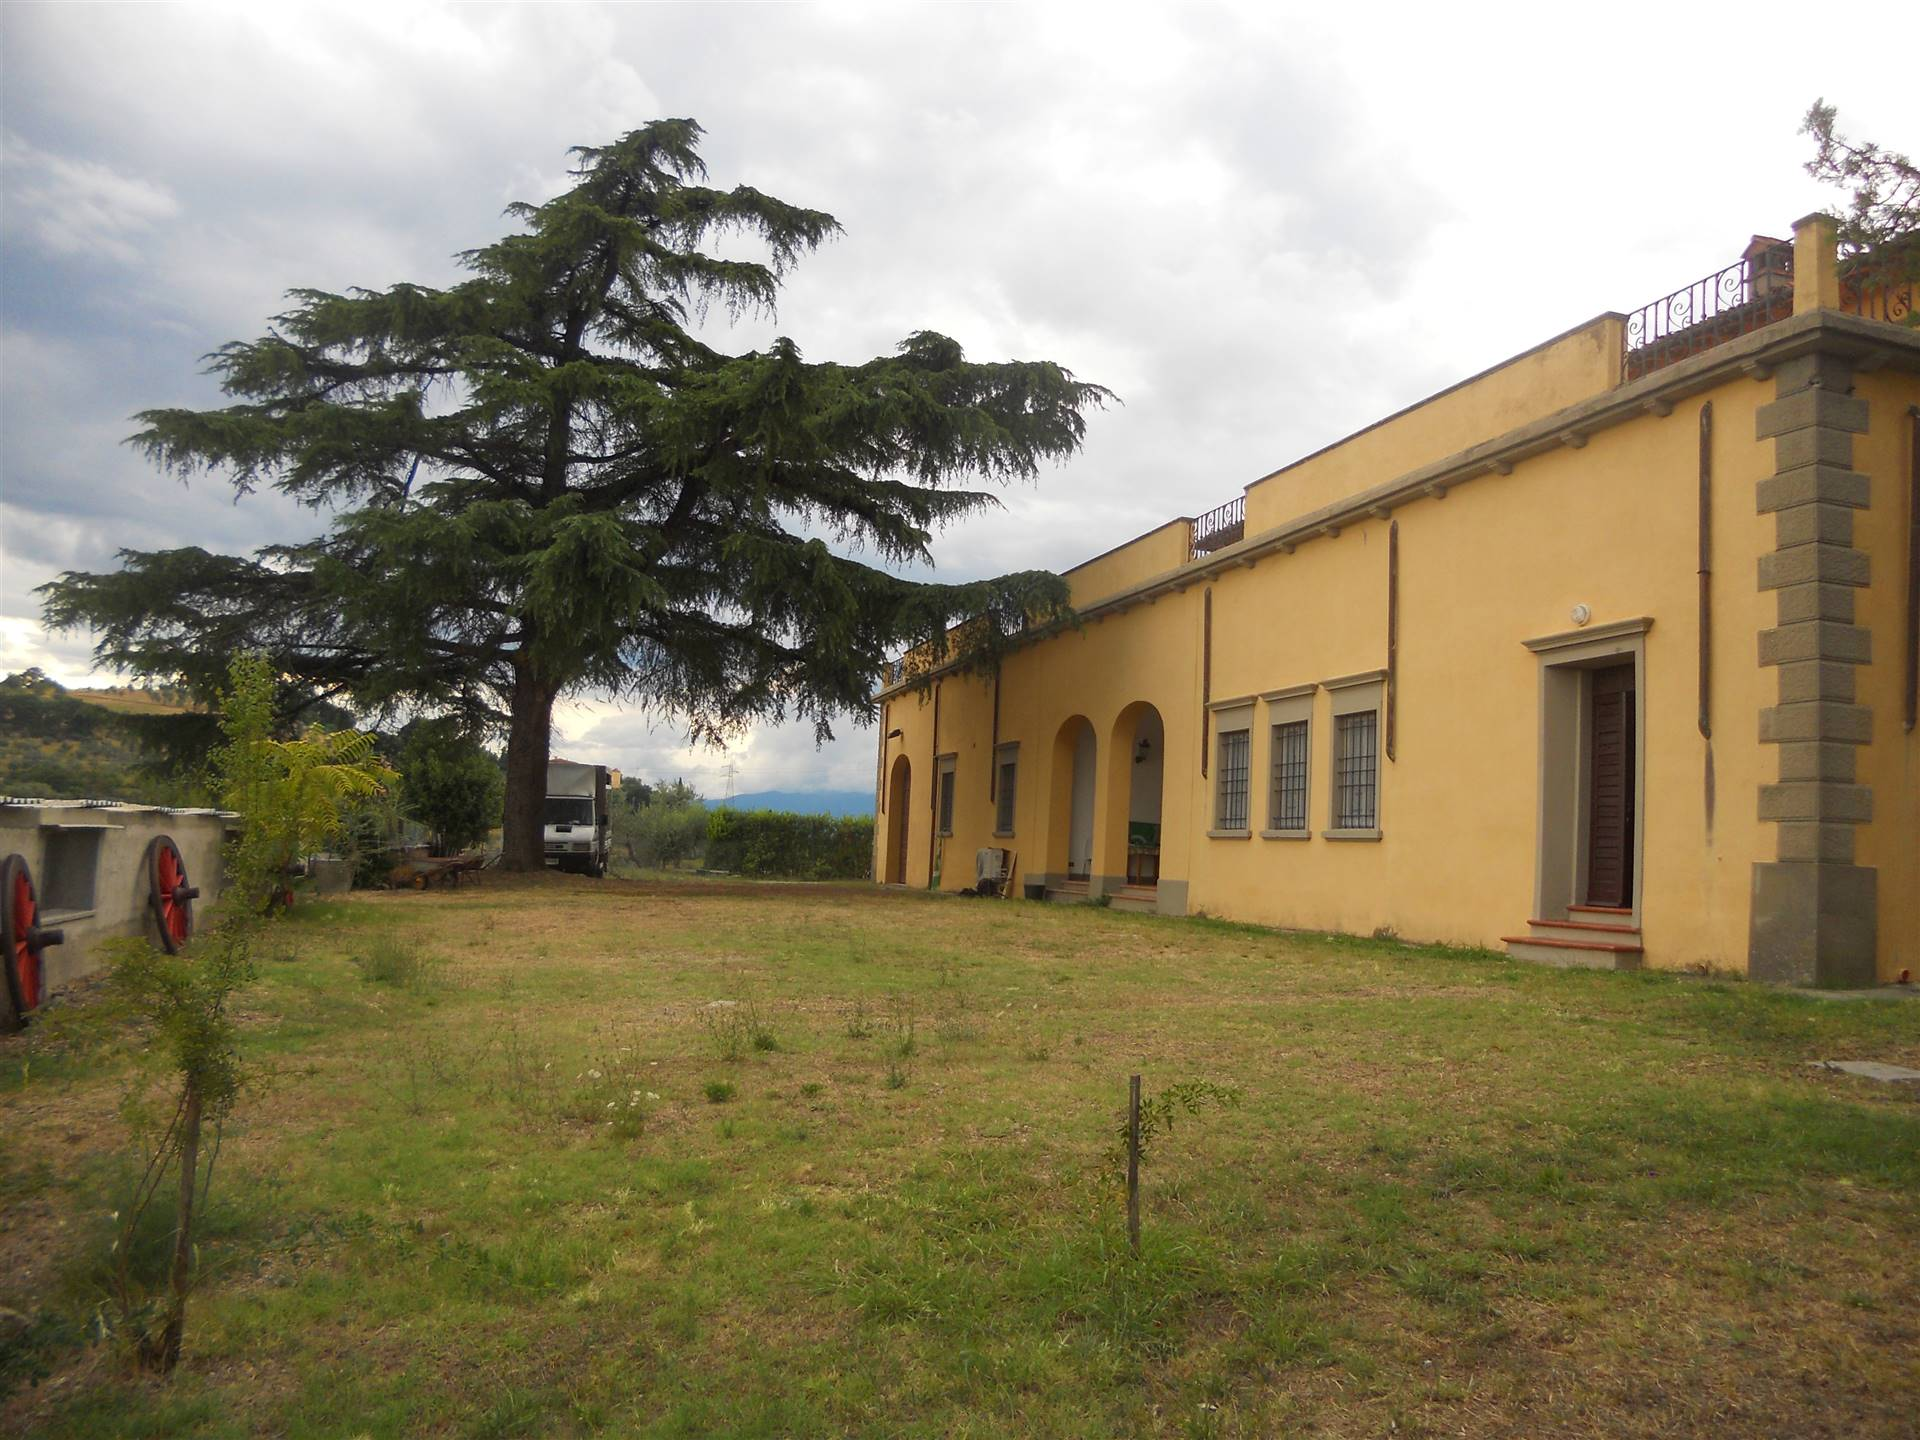 BONISTALLO, POGGIO A CAIANO, Apartment for rent of 240 Sq. mt., Good condition, Heating Individual heating system, Energetic class: G, placed at